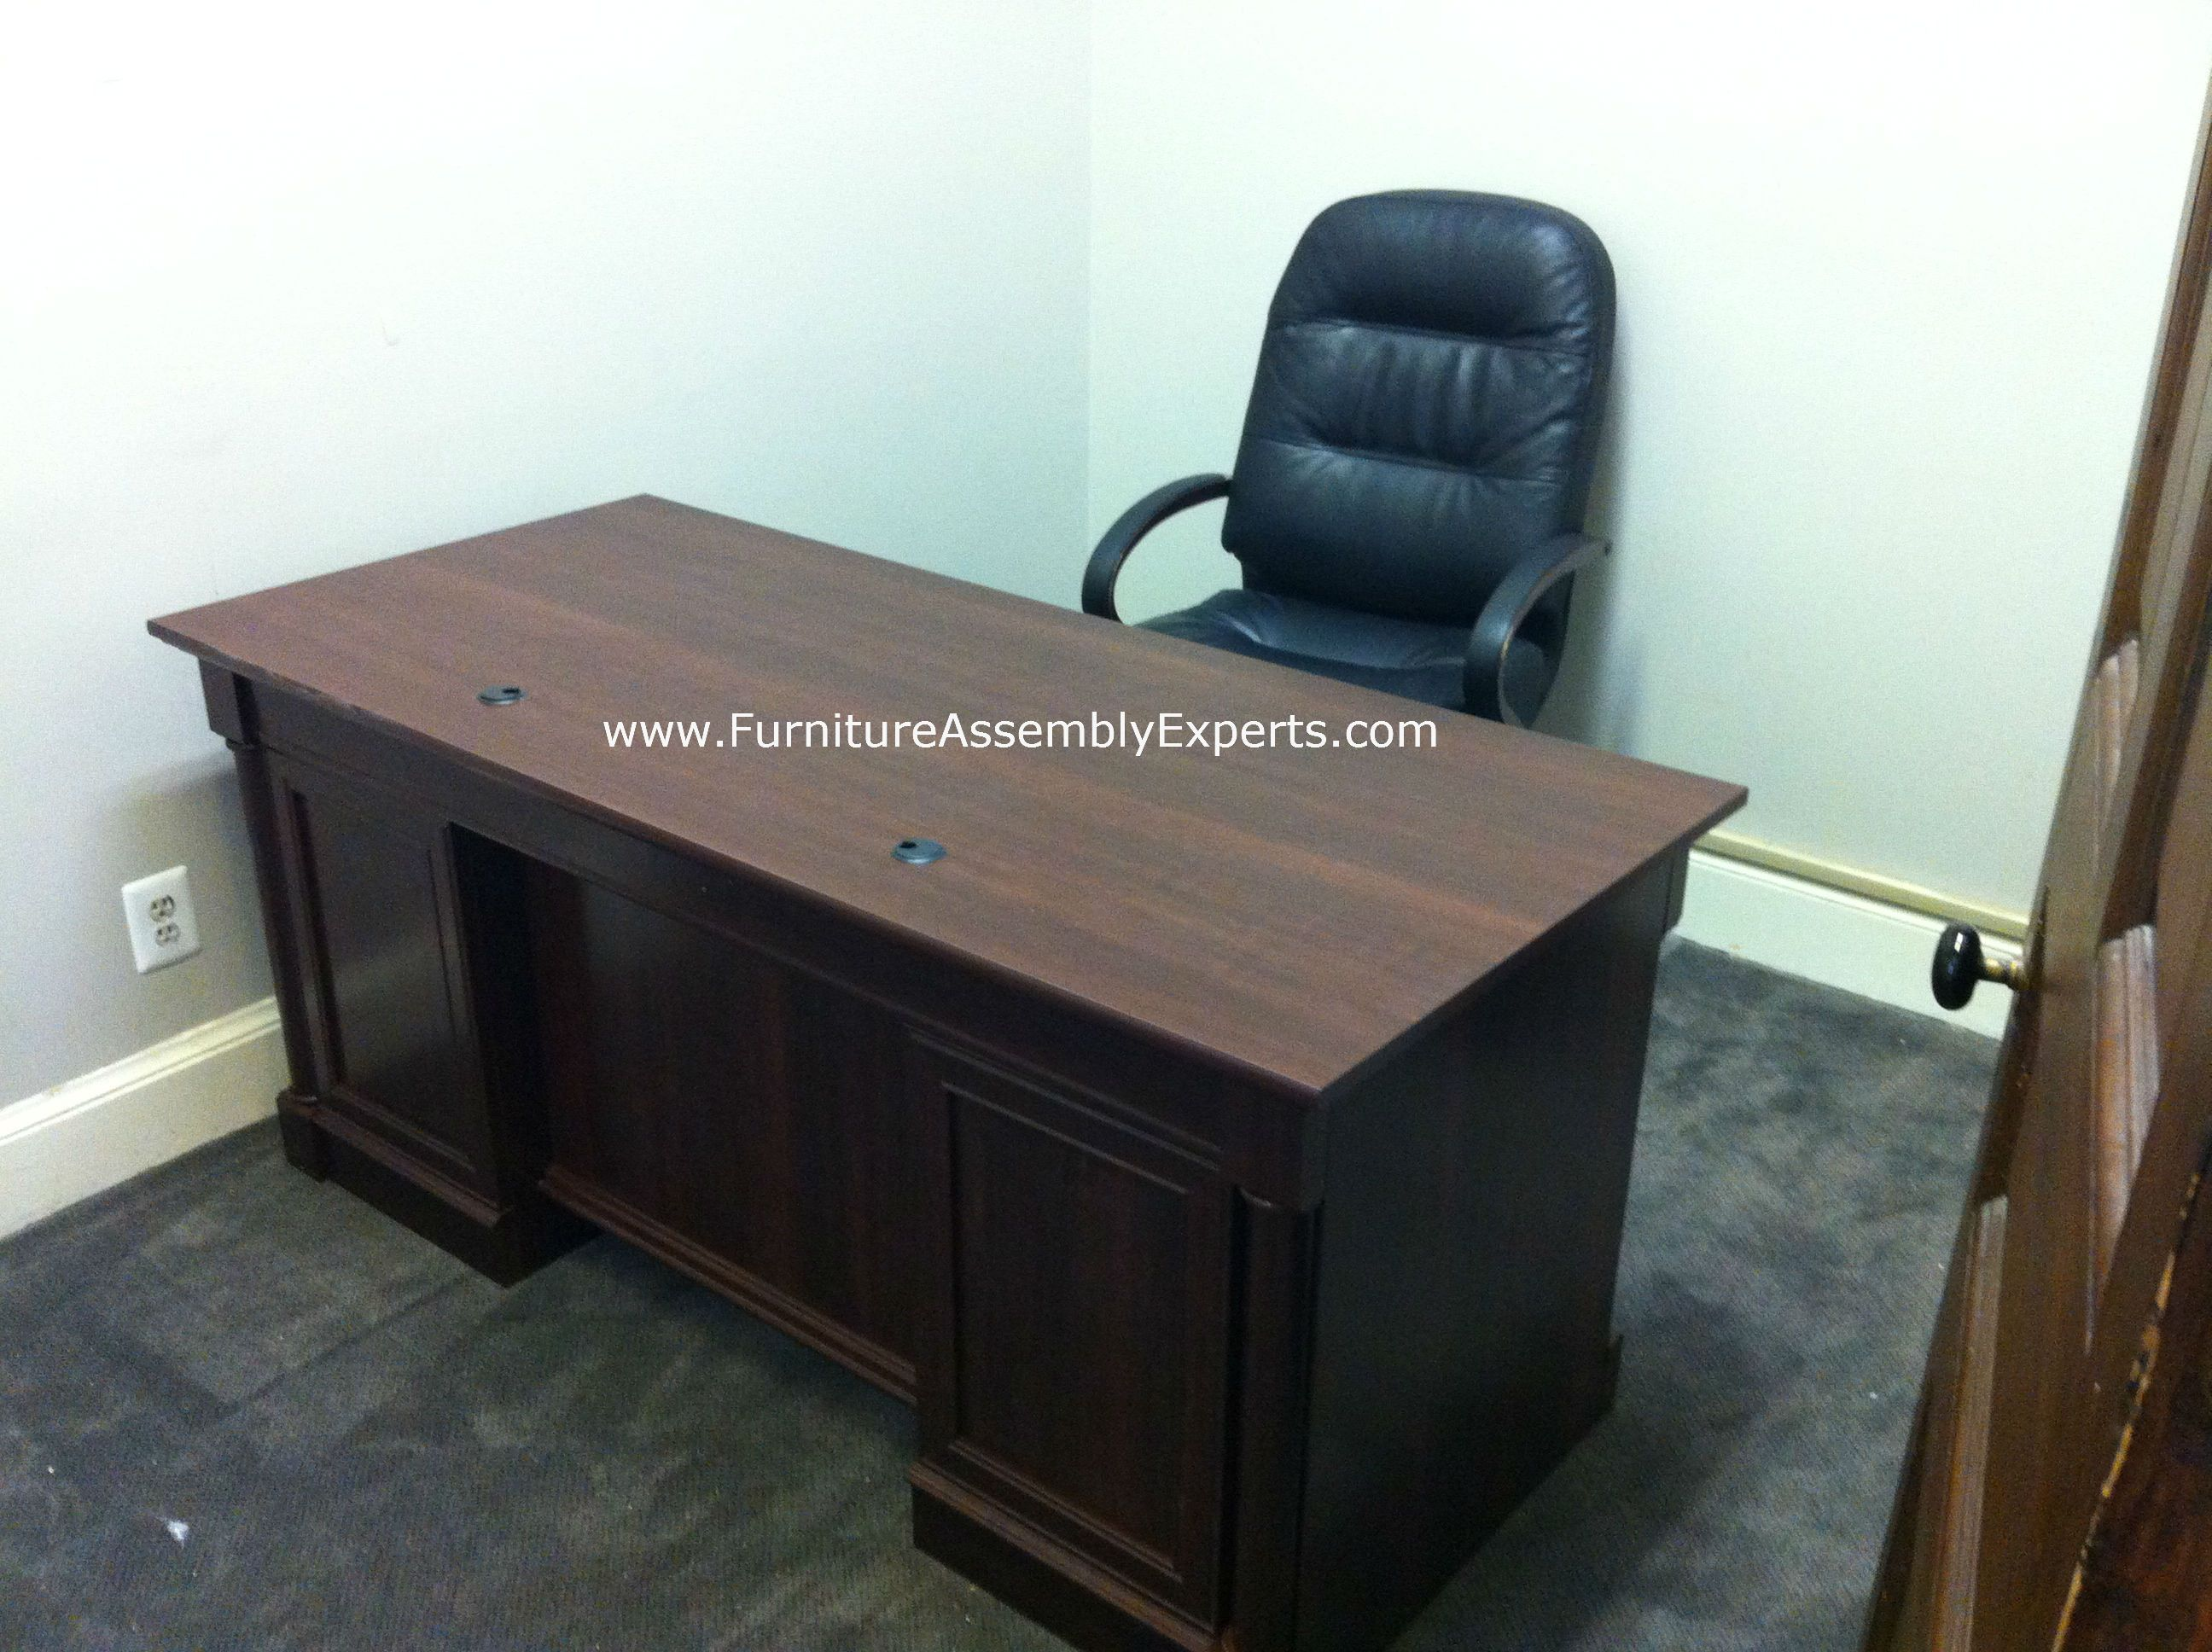 Sauder Executive Office Desk Assembled In Tysons Corner Va By Furniture  Assembly Experts LLC   Call